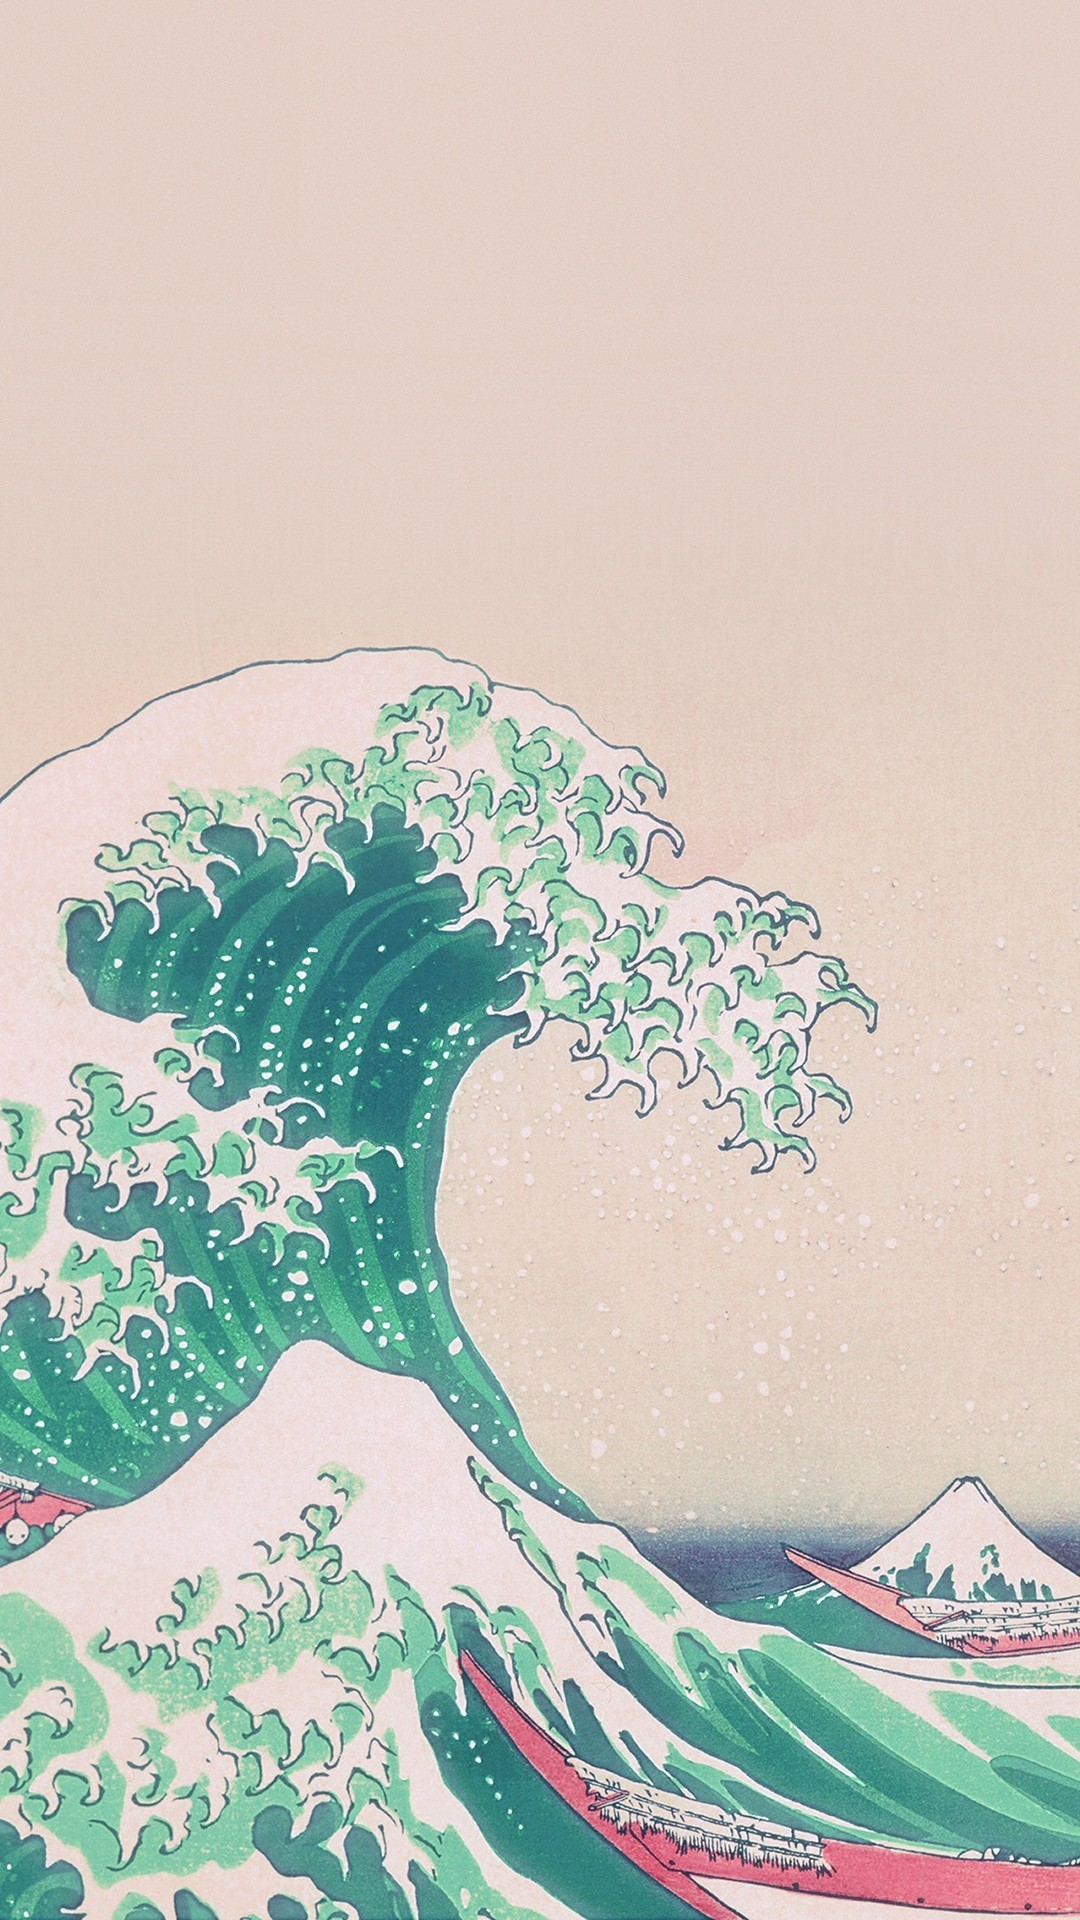 Res: 1080x1920, Japanese art wallpapers